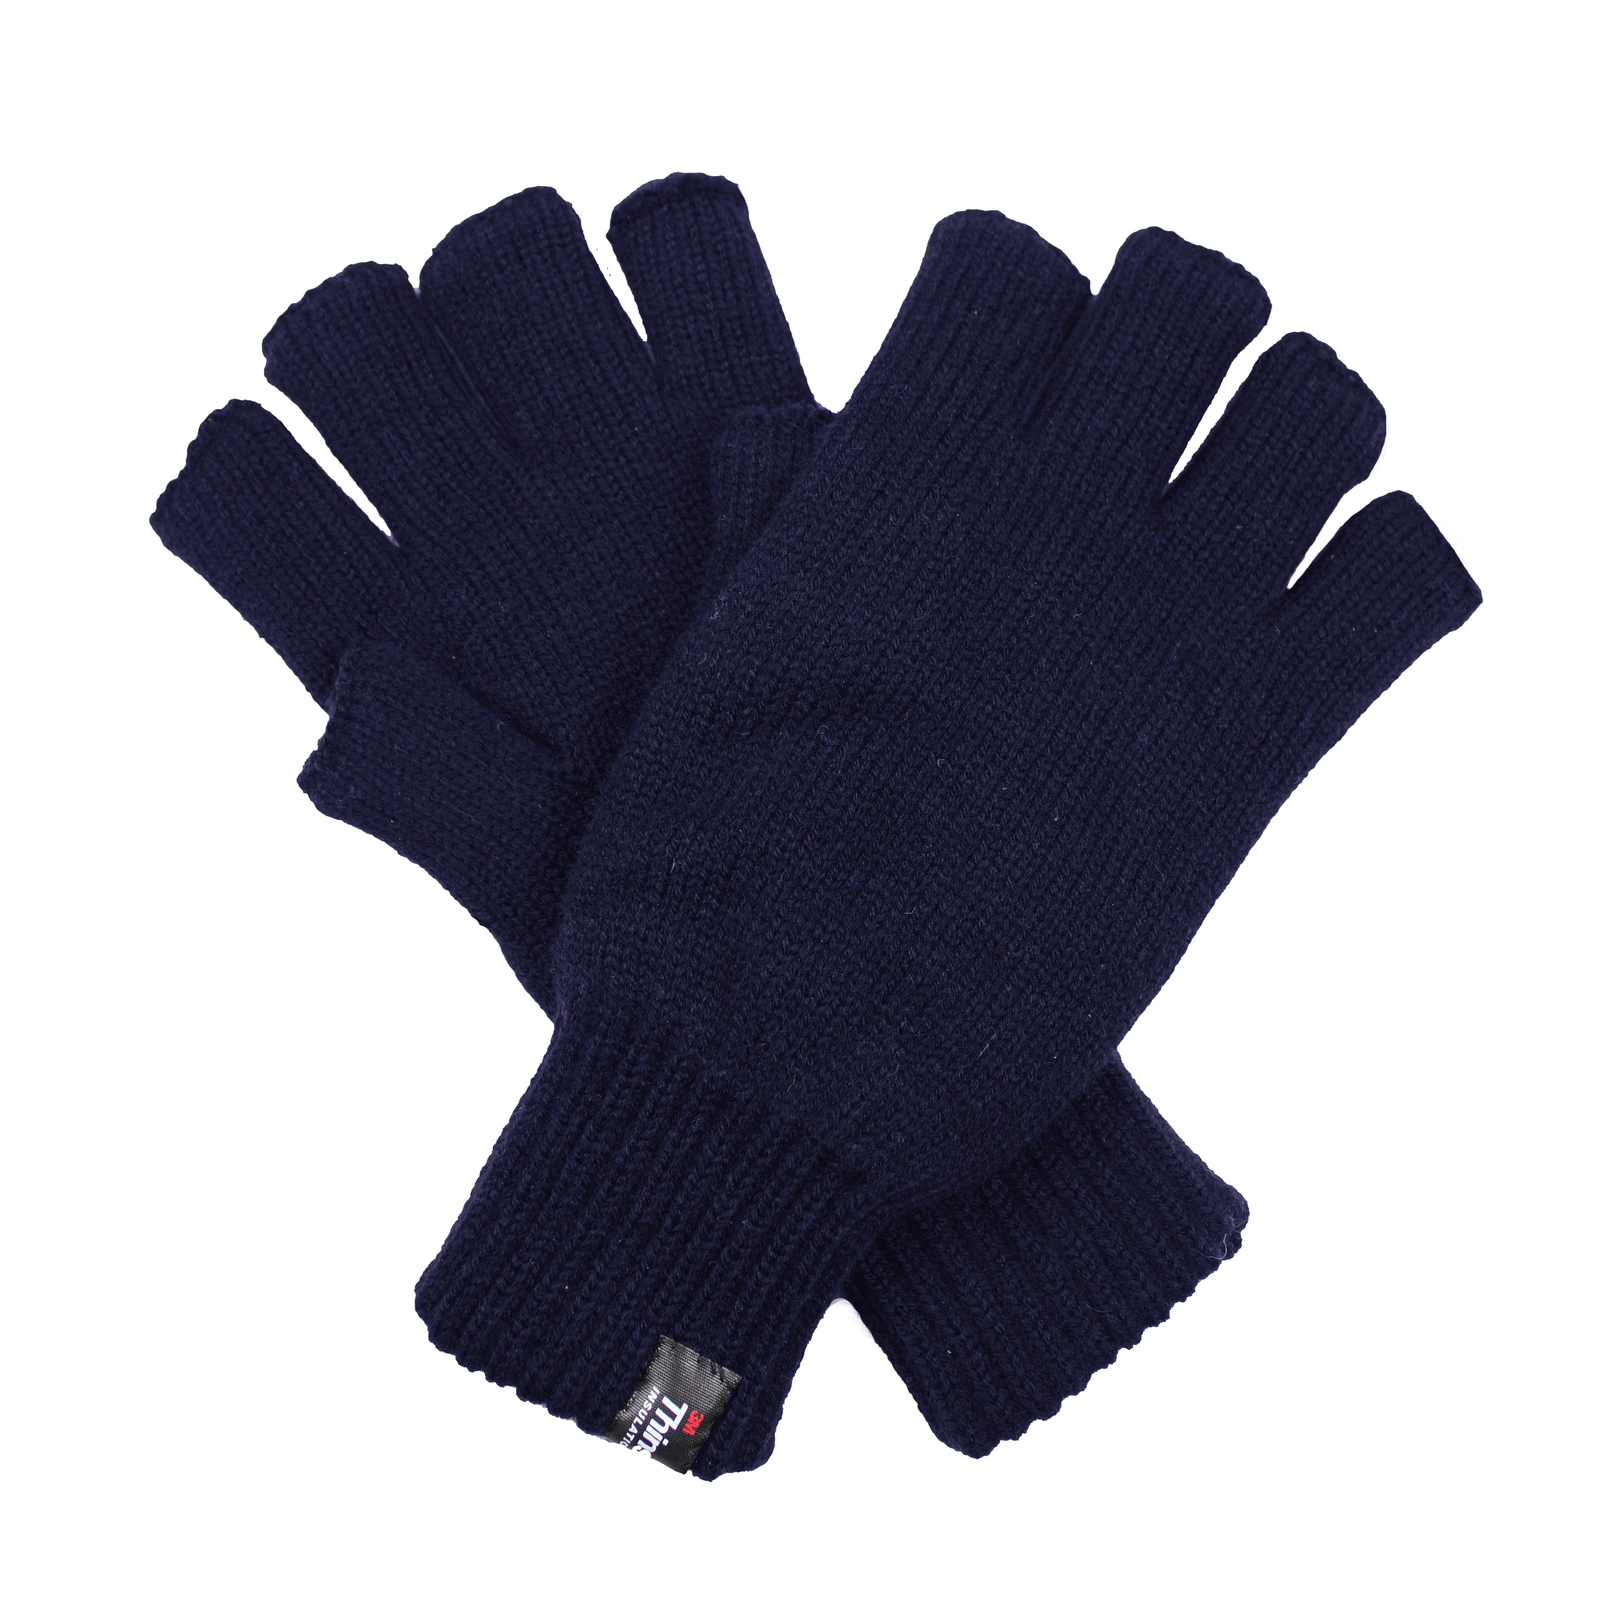 DENTS-3M-THINSULATE-Polar-Fleece-Fingerless-Gloves-Warm-Knitted-Insulation thumbnail 4